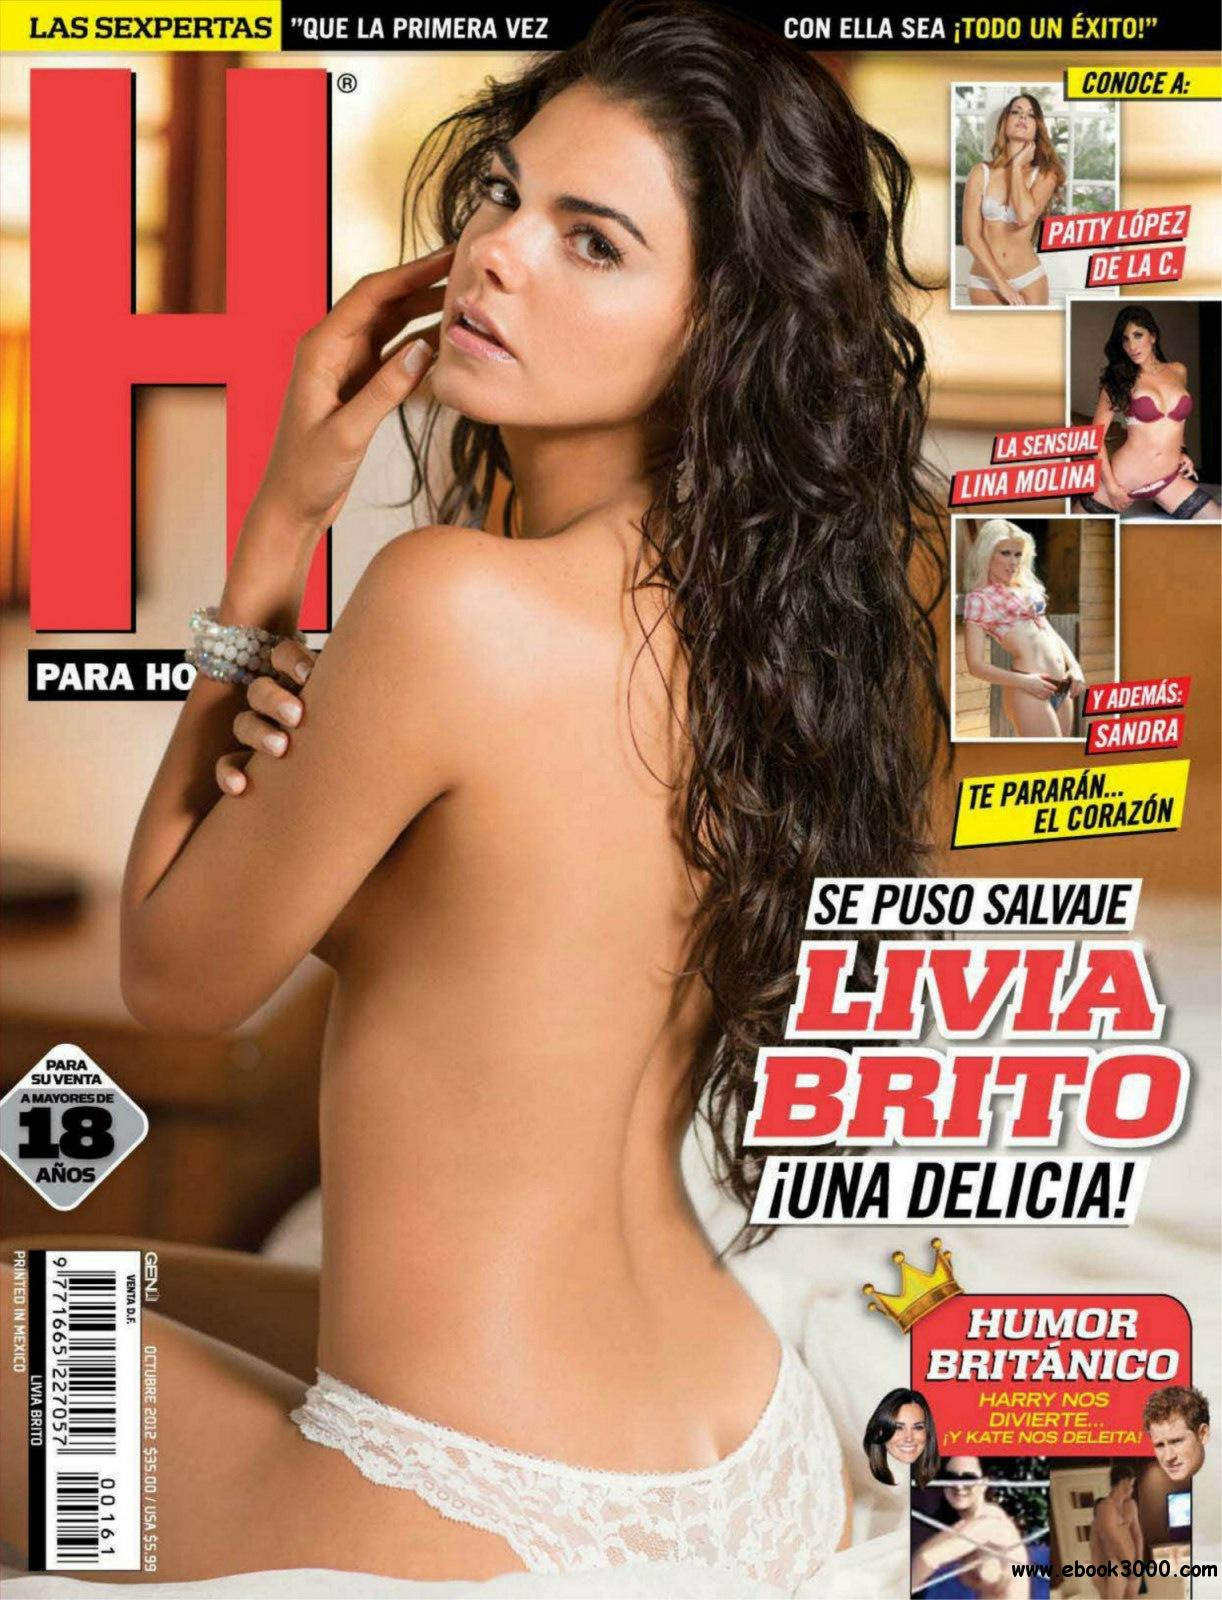 H para Hombres Mexico - October 2012 free download